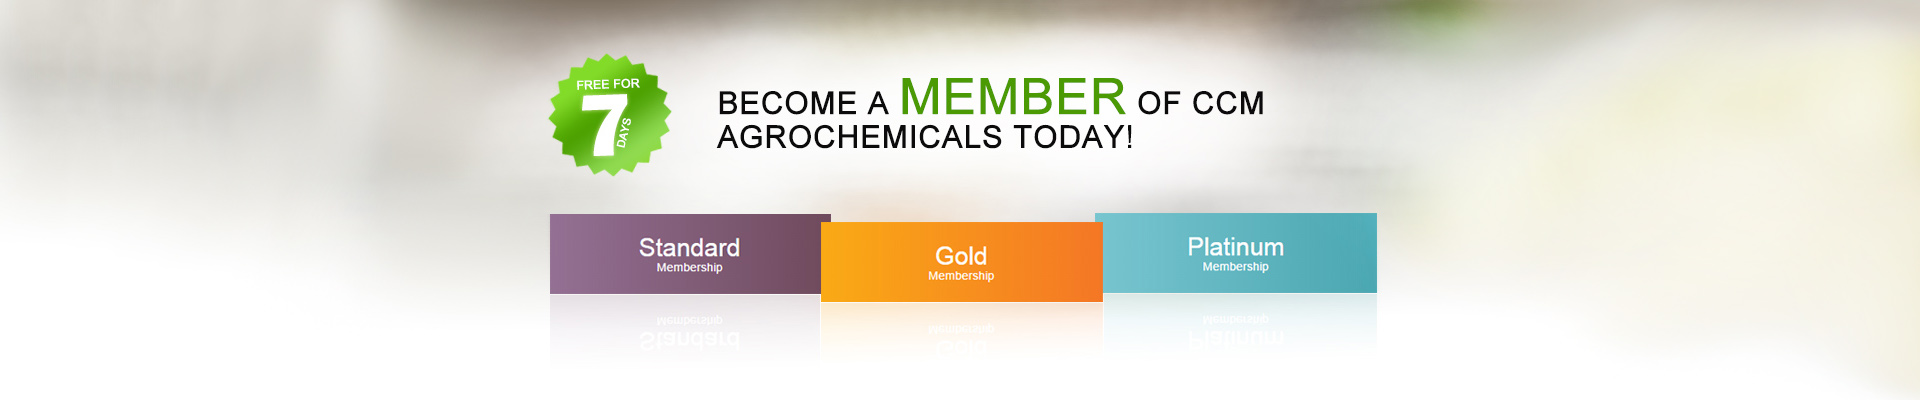 Become a member  of  CCM  Agrochemicals today!